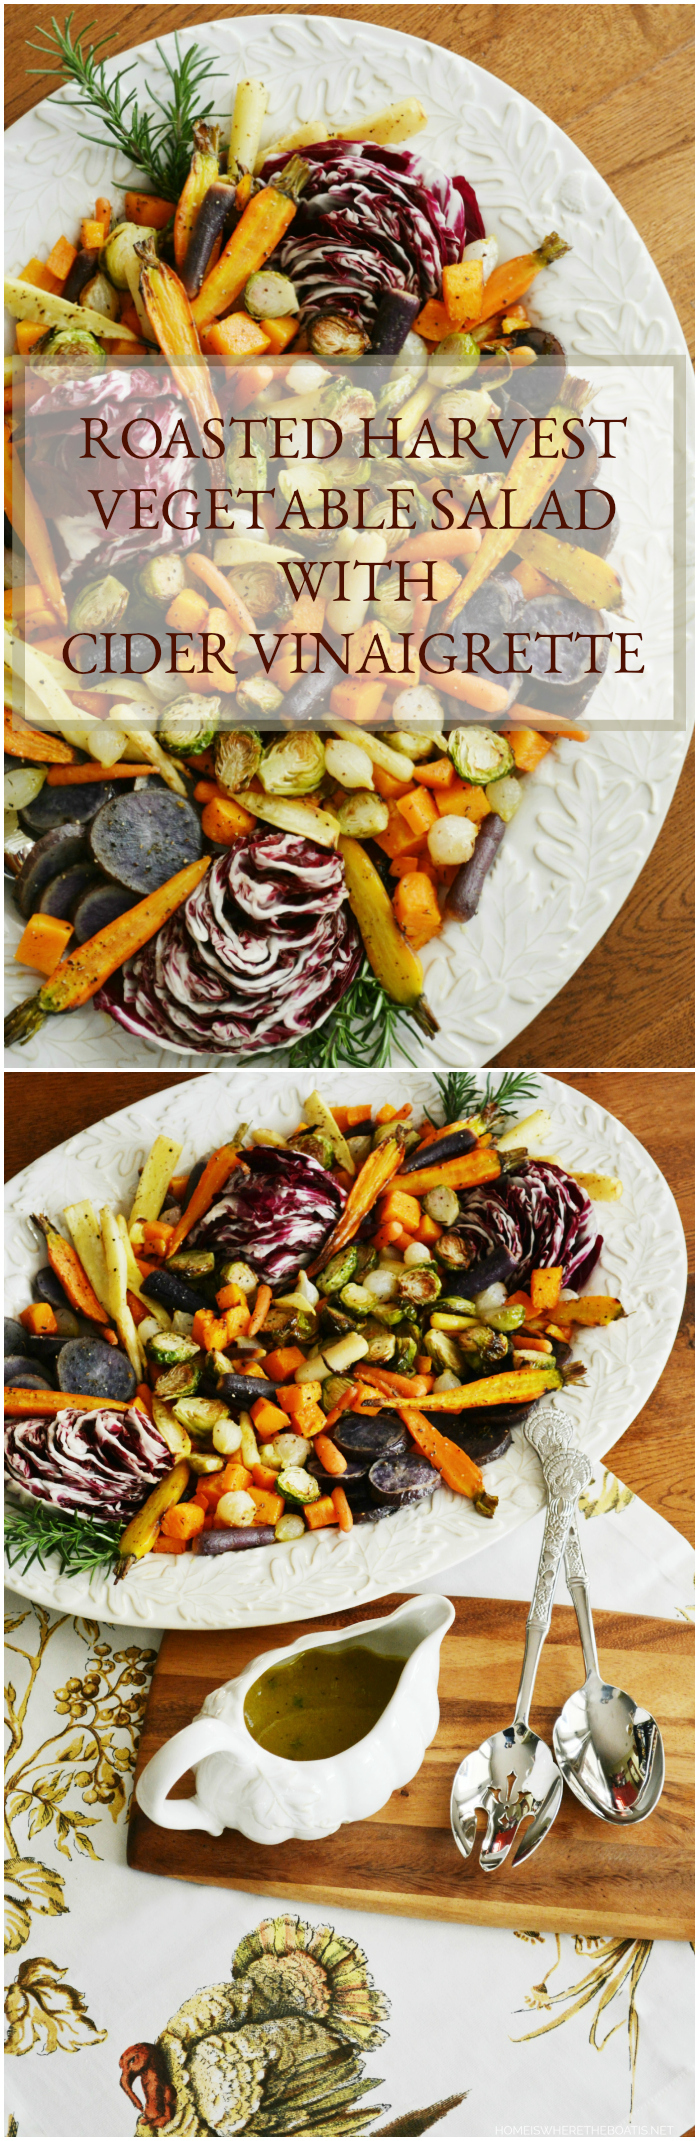 Roasted Harvest Vegetable Salad with Apple Cider Vinaigrette, a healthy and flavorful addition to your Thanksgiving feast! | ©homeiswheretheboatis.net #healthy #sidedish #veggies #Thanksgiving